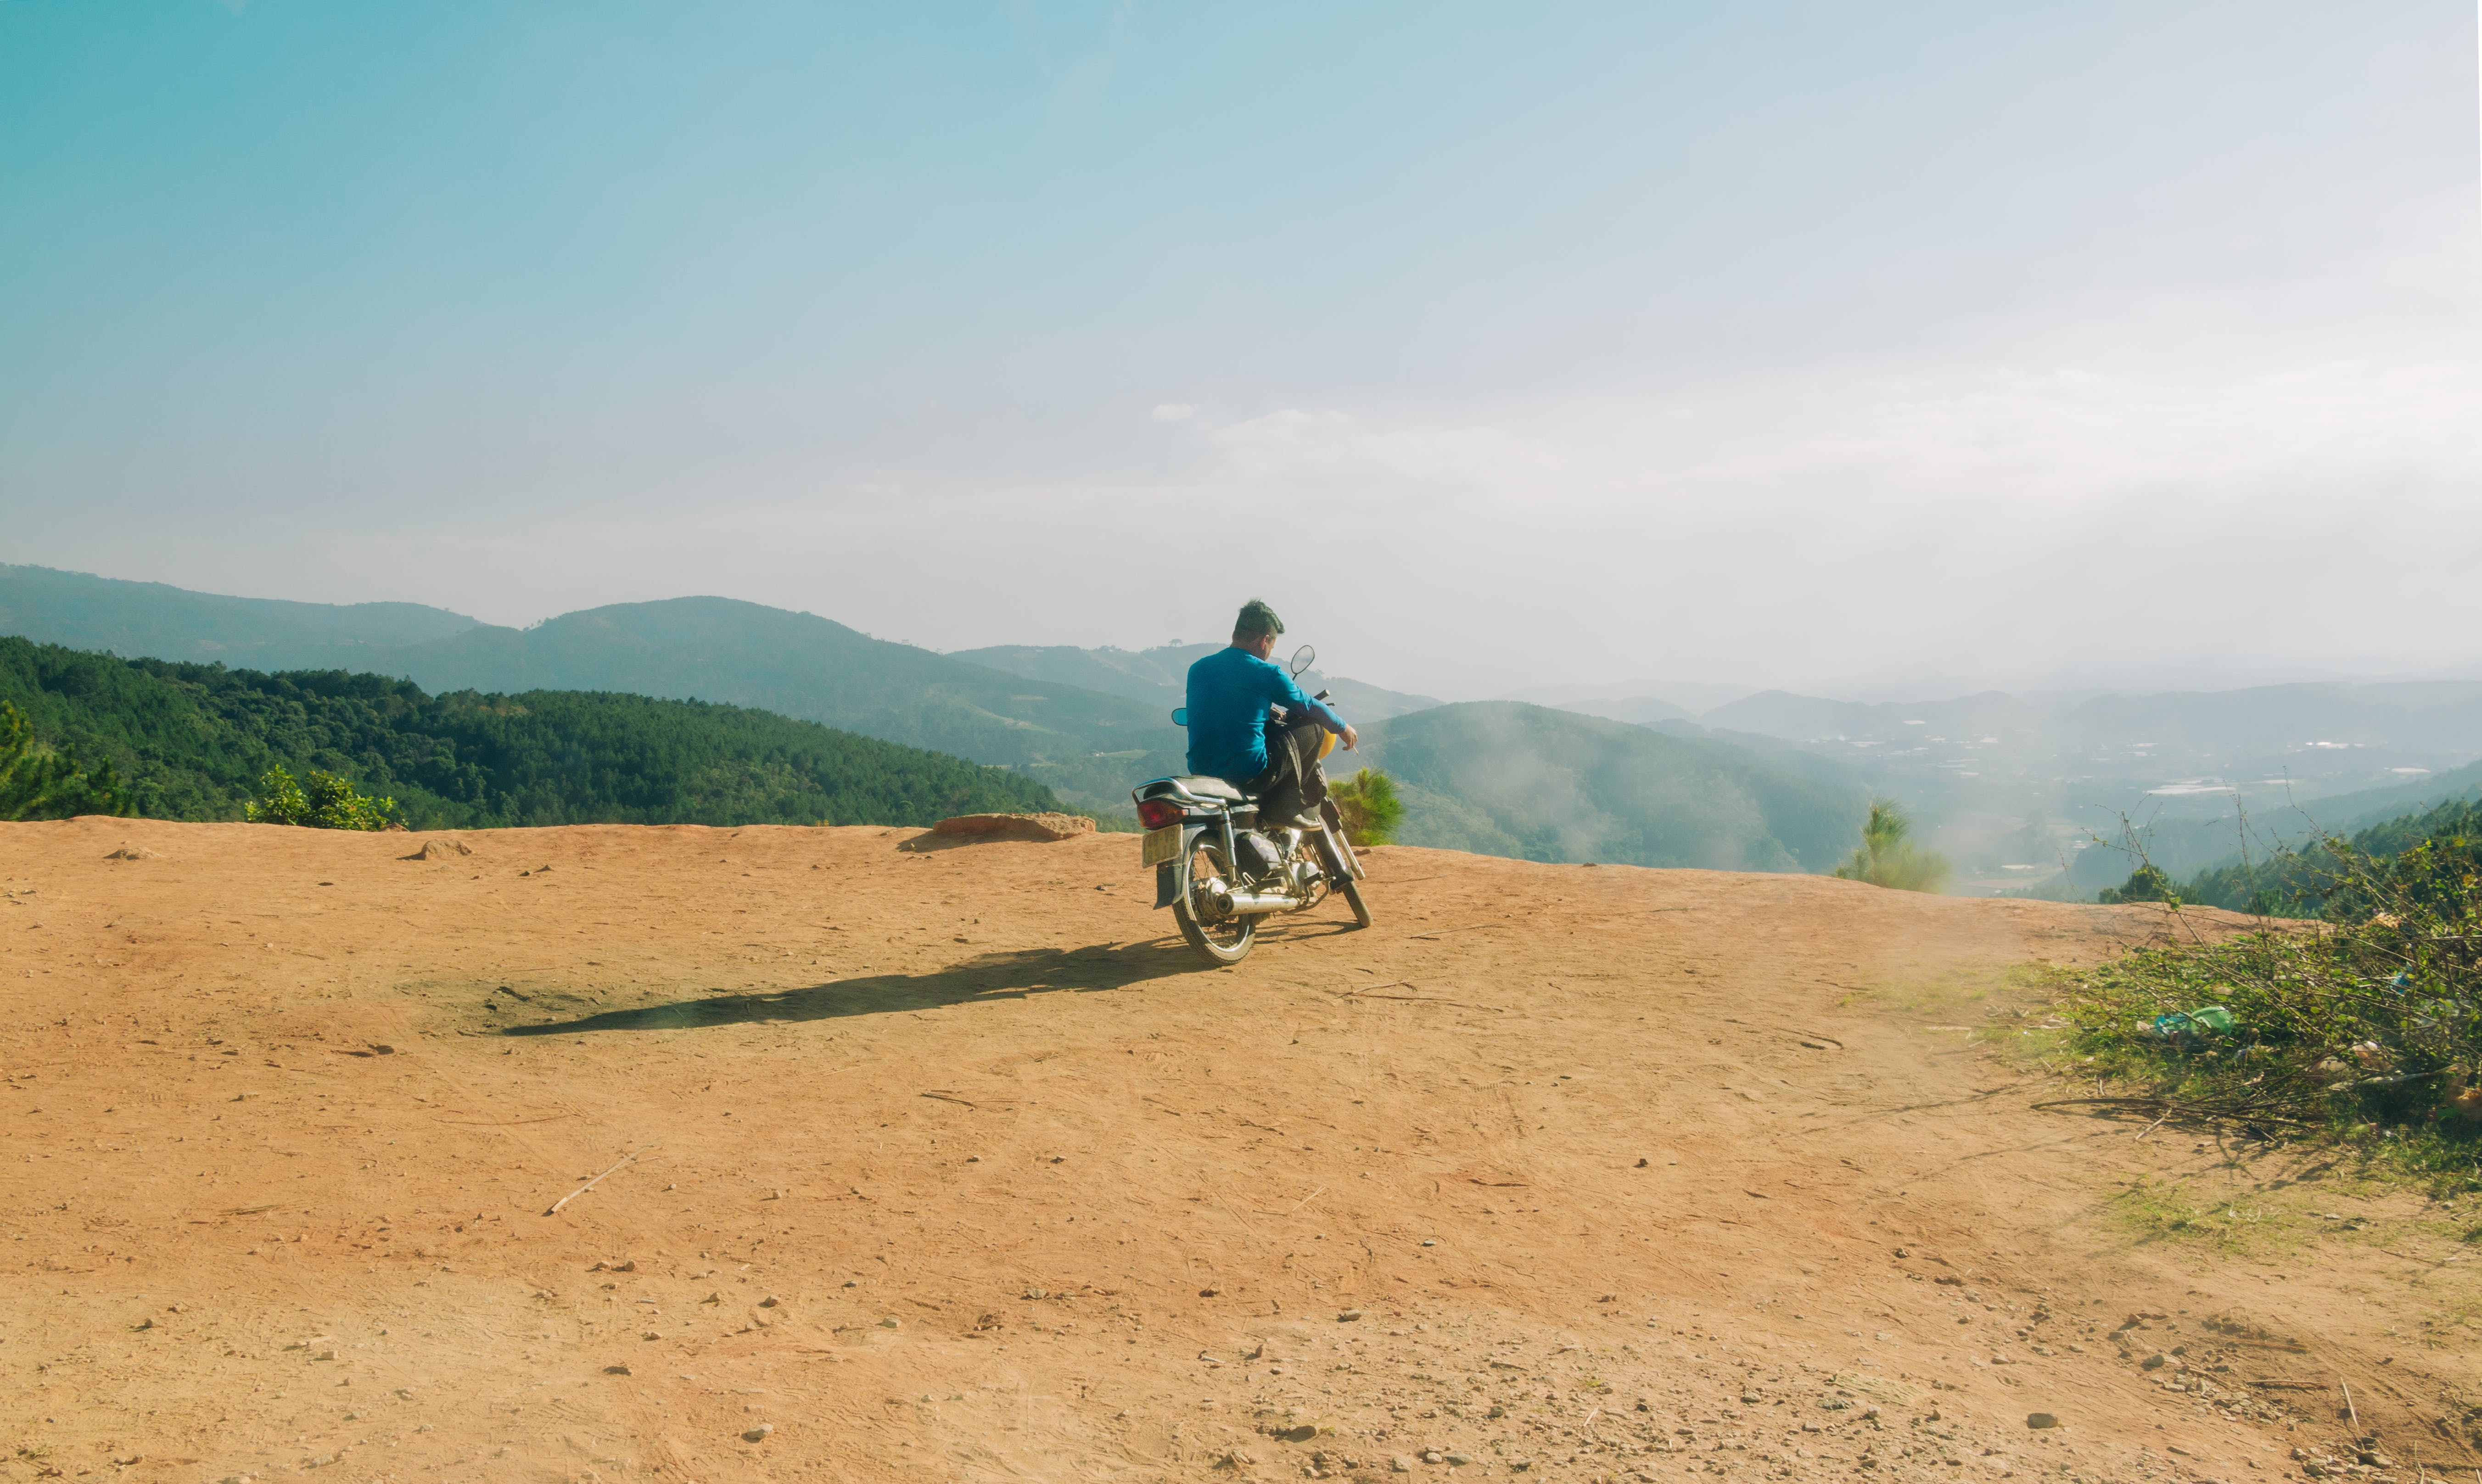 Man in Blue Top Riding Motorcycle